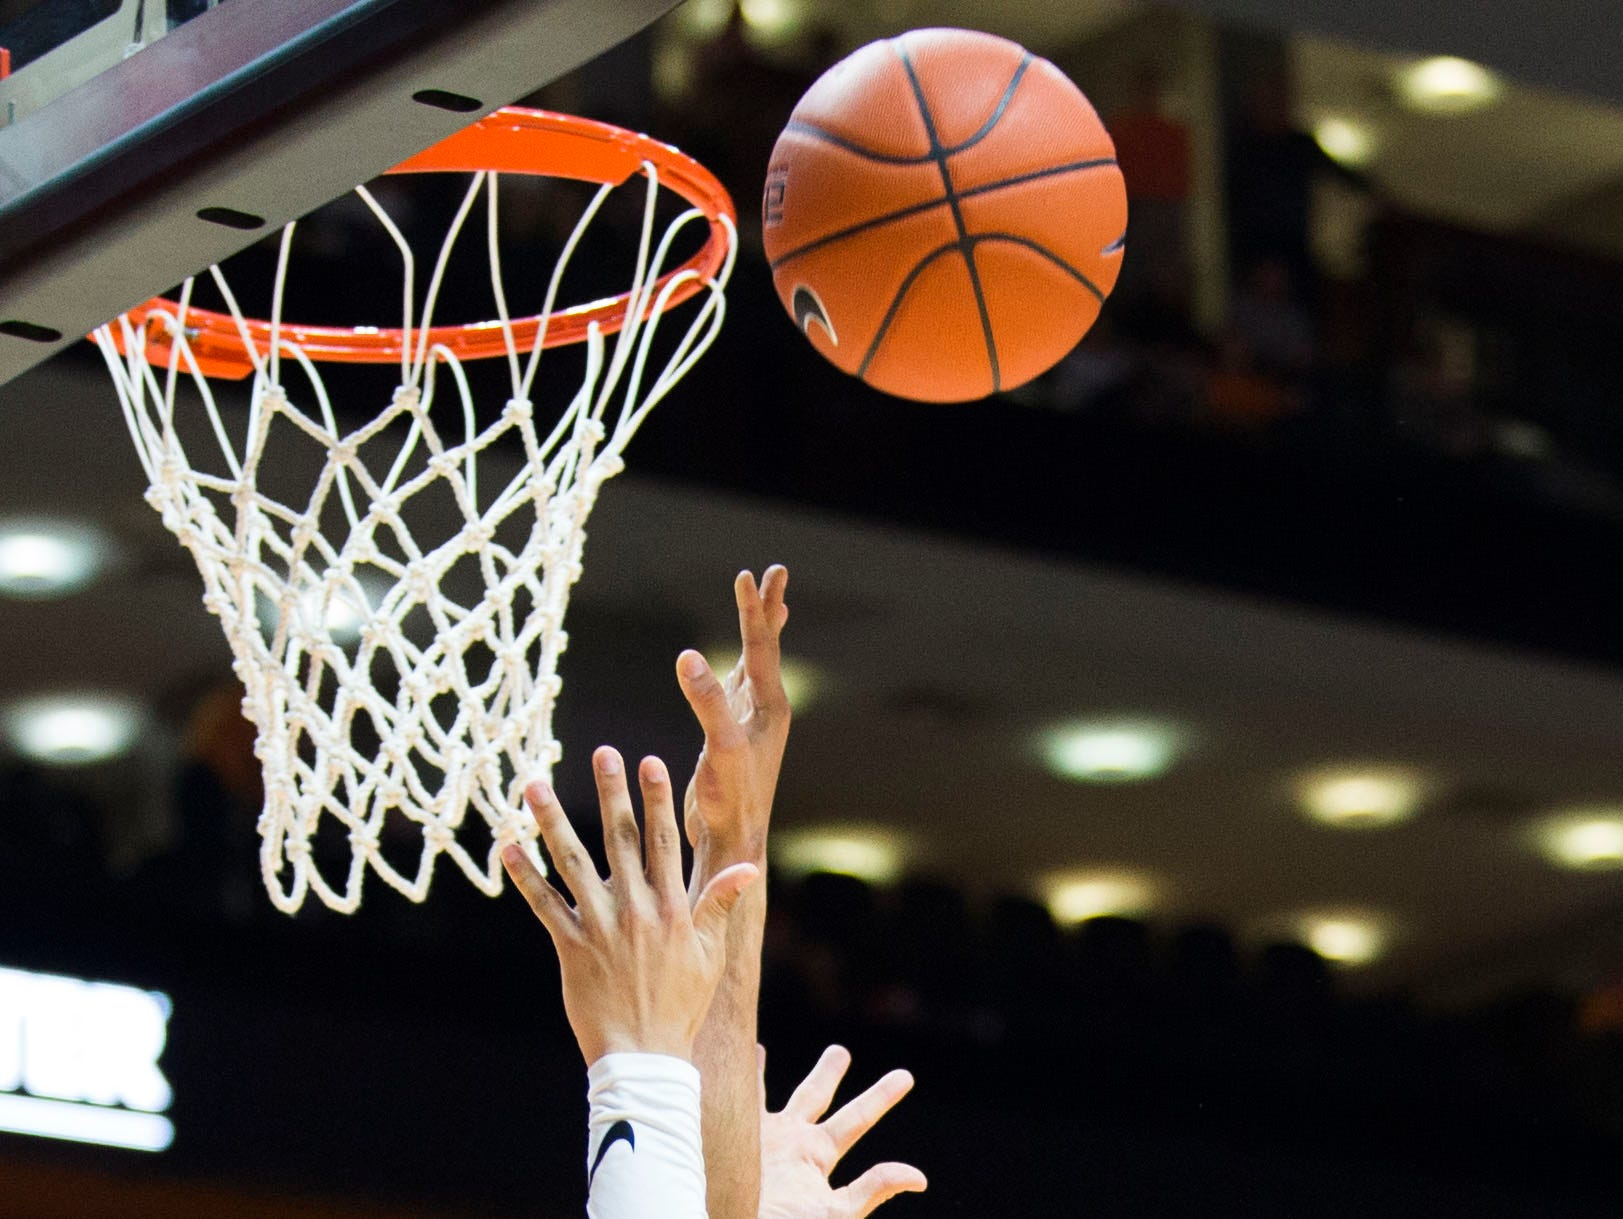 Tennessee's Lamonte Turner (1) takes a shot during a college basketball game between Tennessee and Georgia at Thompson-Boling Arena Saturday, Jan. 5, 2019. Tennessee defeated Georgia 96-50.